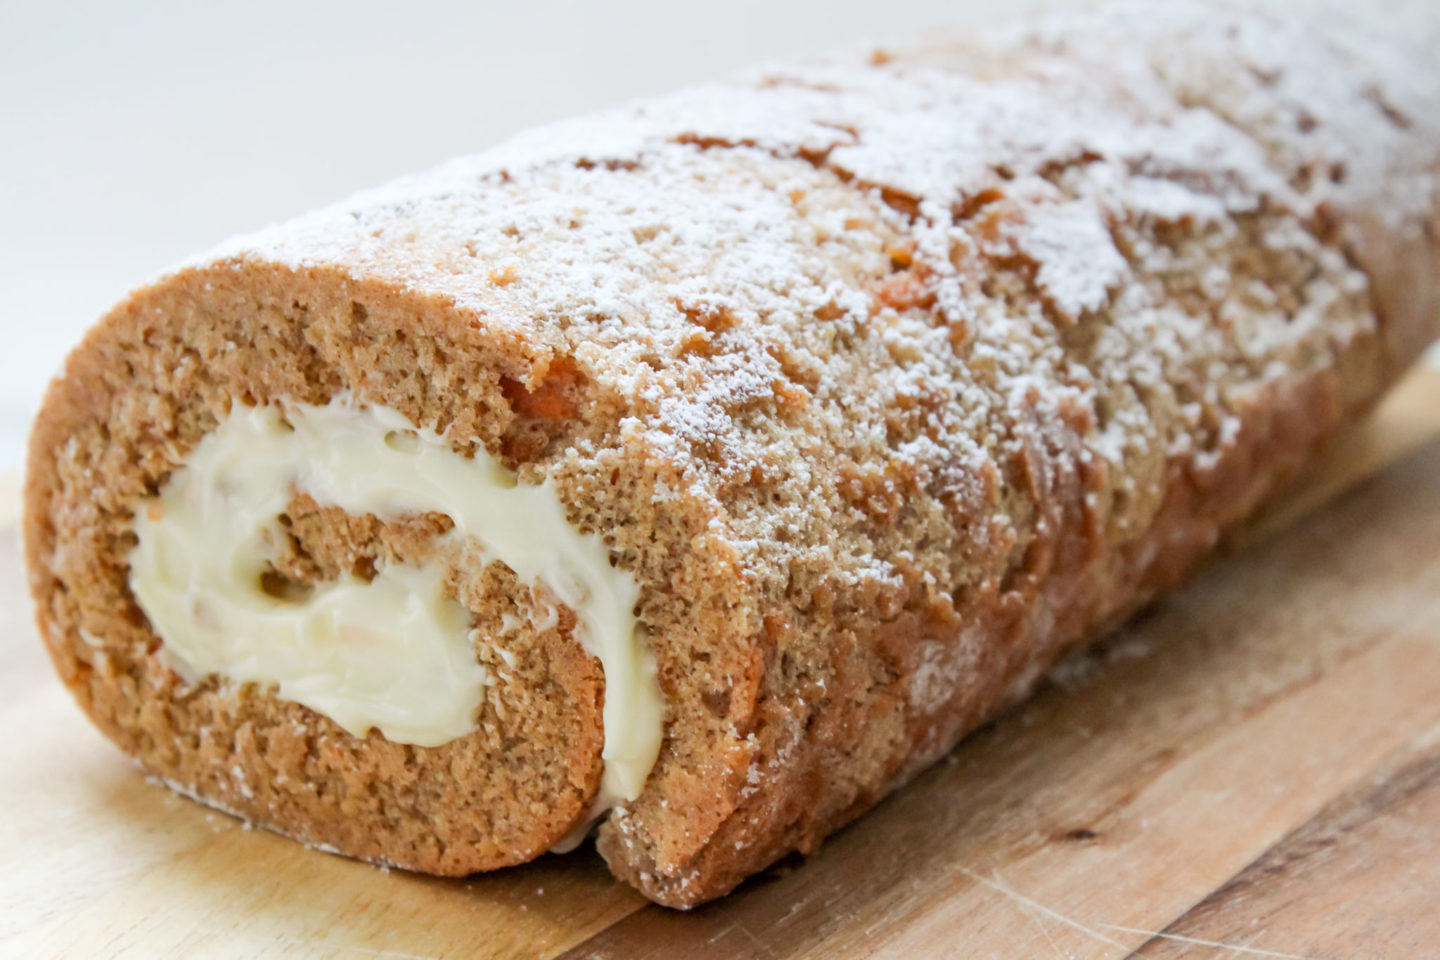 Carrot cake Swiss roll with cream cheese icing/frosting